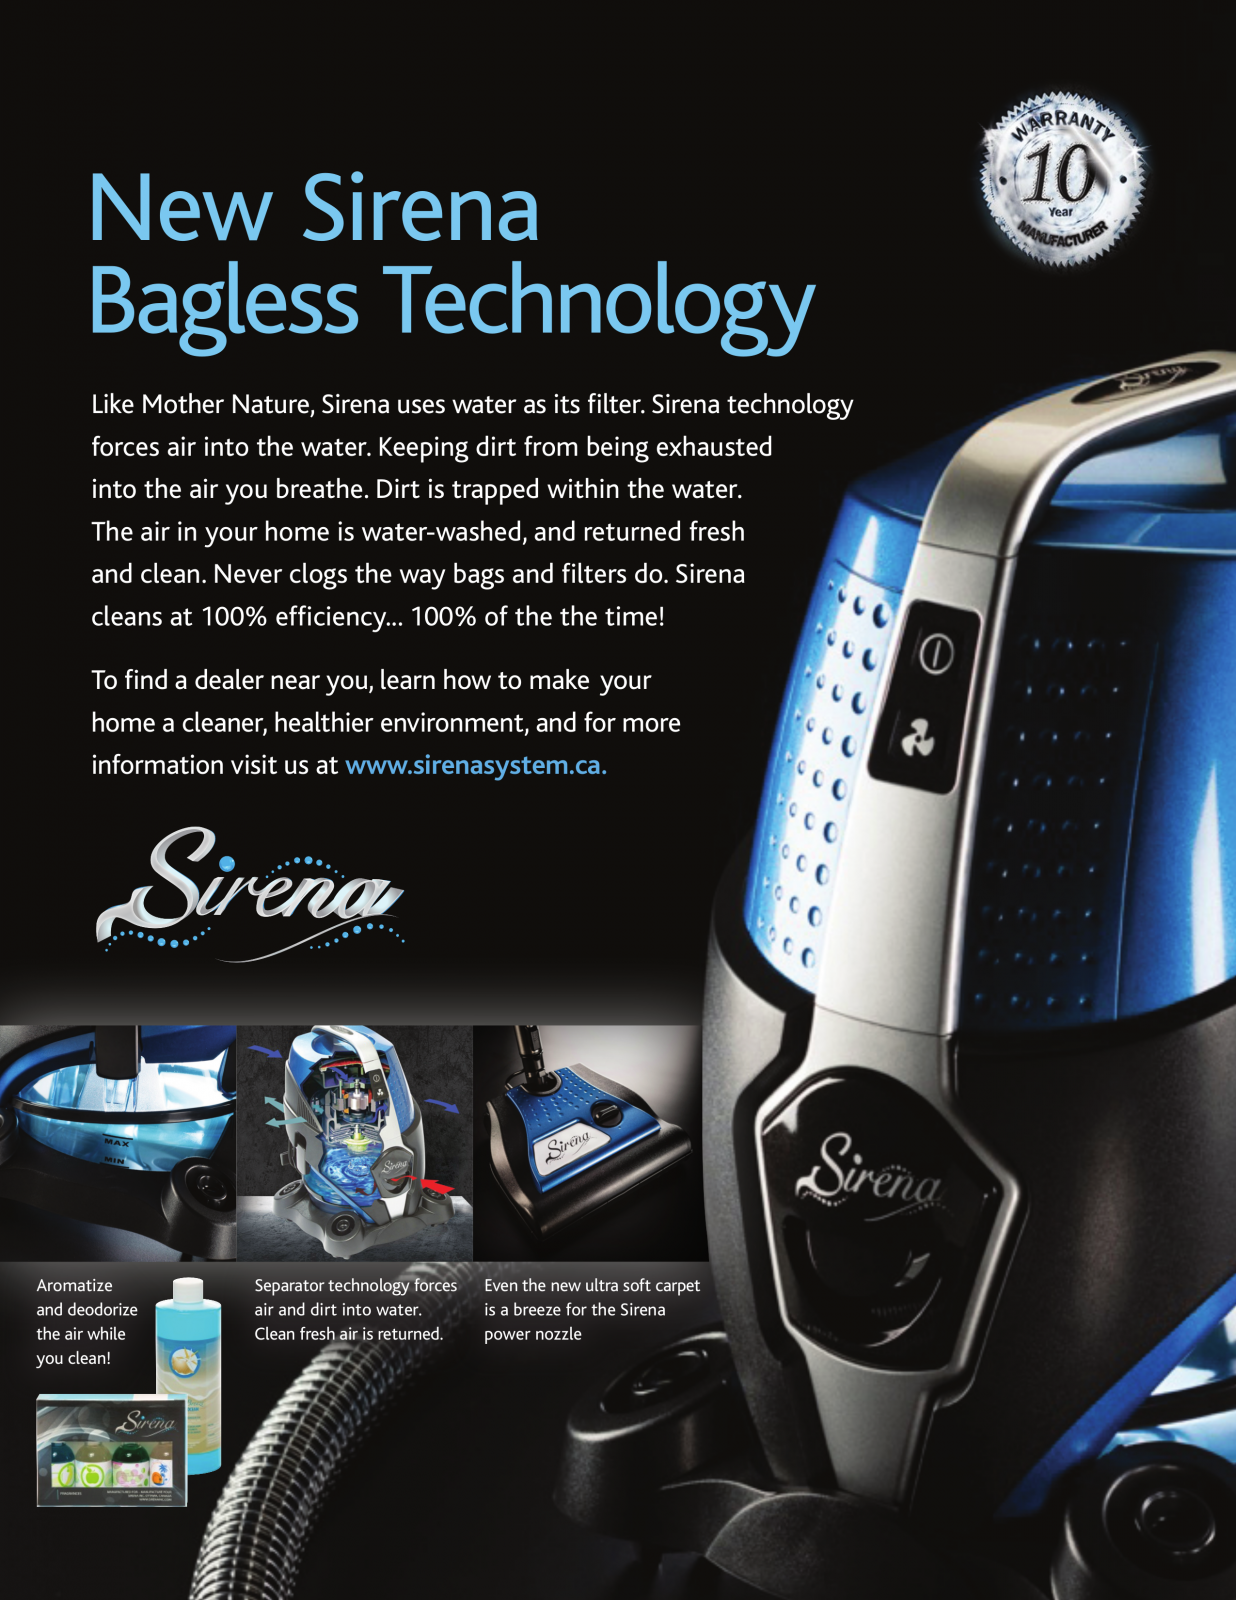 Sirena Total Home Cleaning System